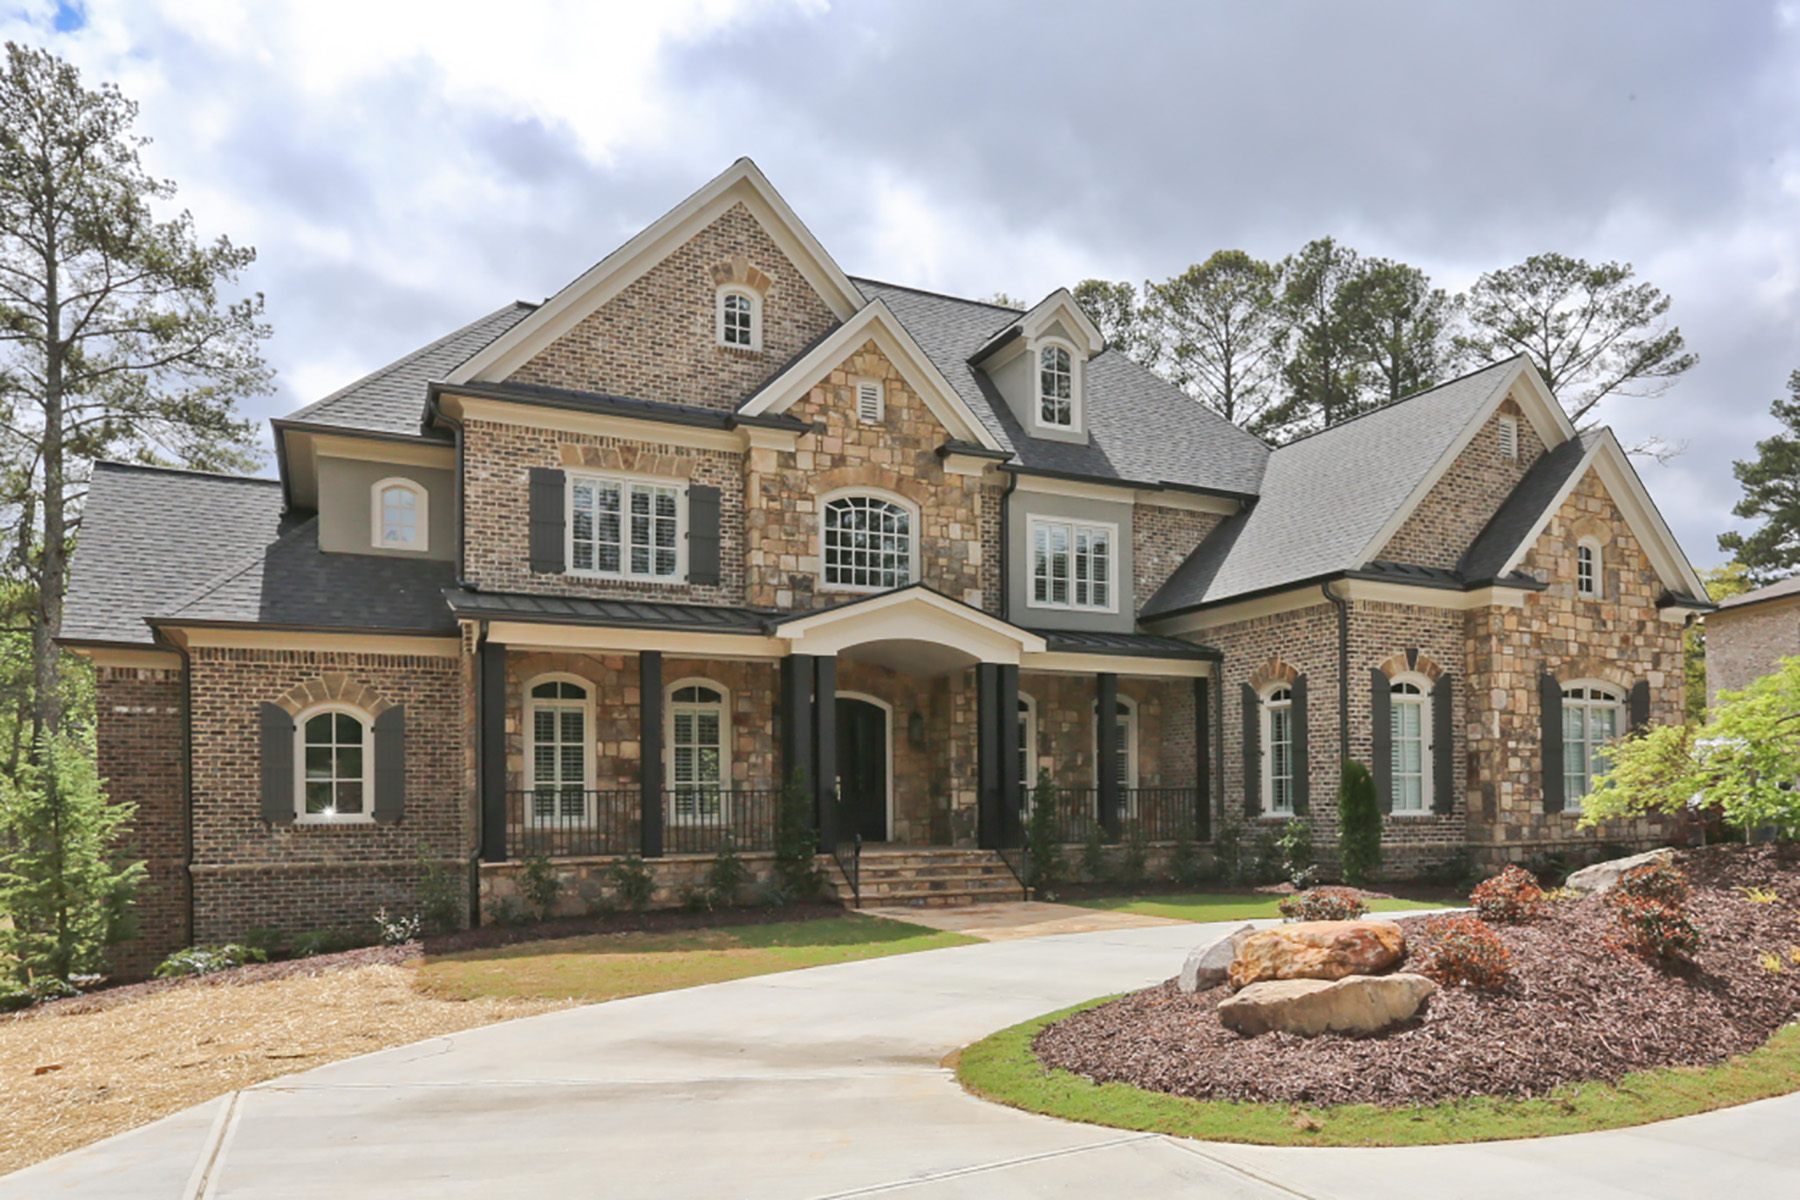 Terreno por un Venta en Rare New Construction Opportunity in Country Club Of The South 2009 Westbourne Way Johns Creek, Georgia 30022 Estados Unidos